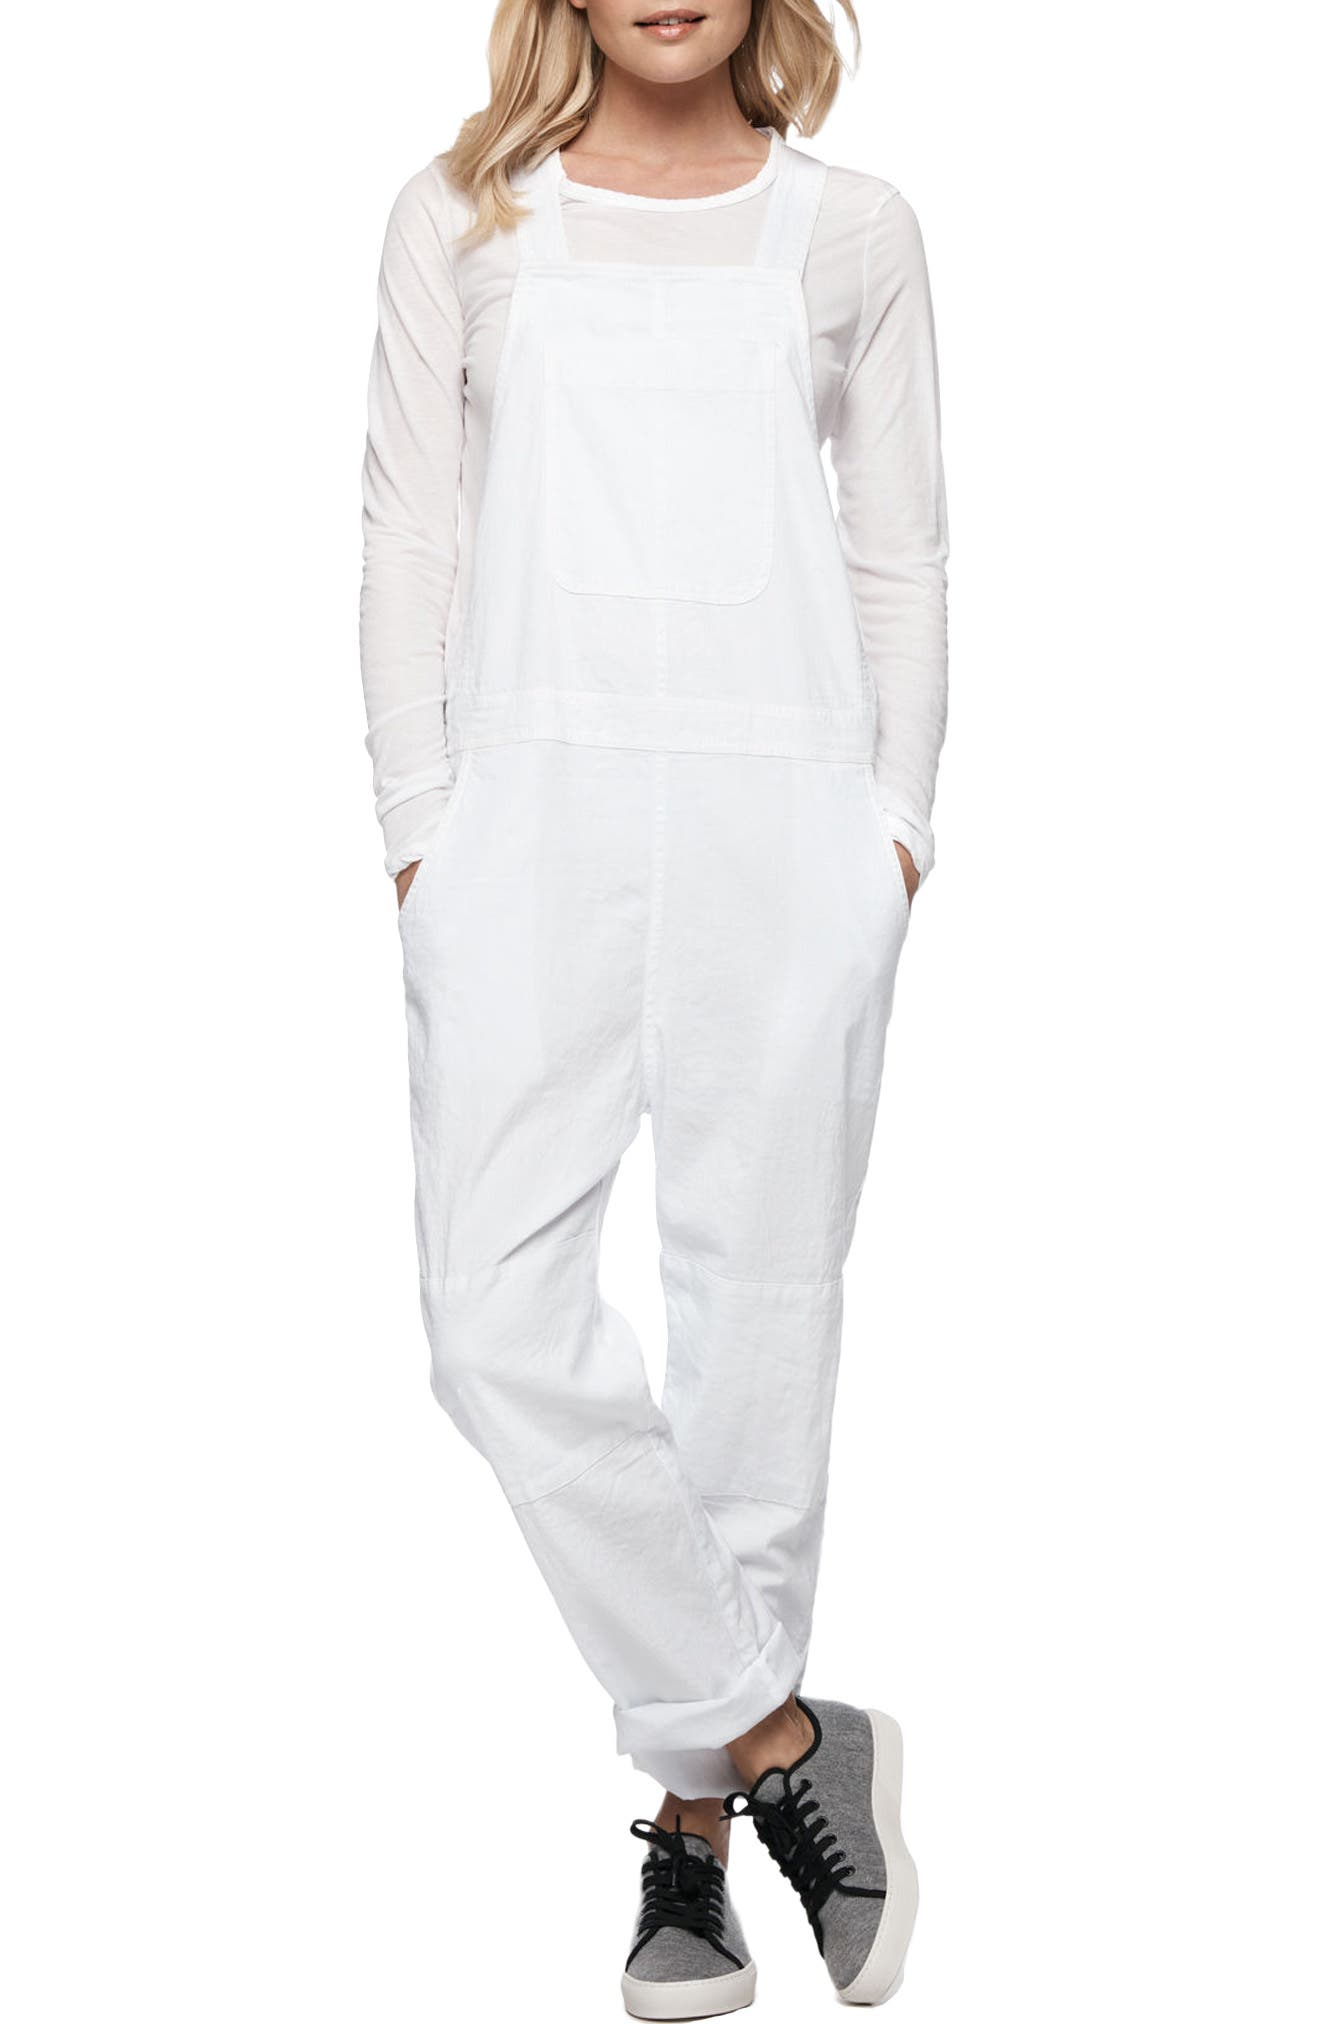 Main Image - James Perse Cotton Linen Overalls